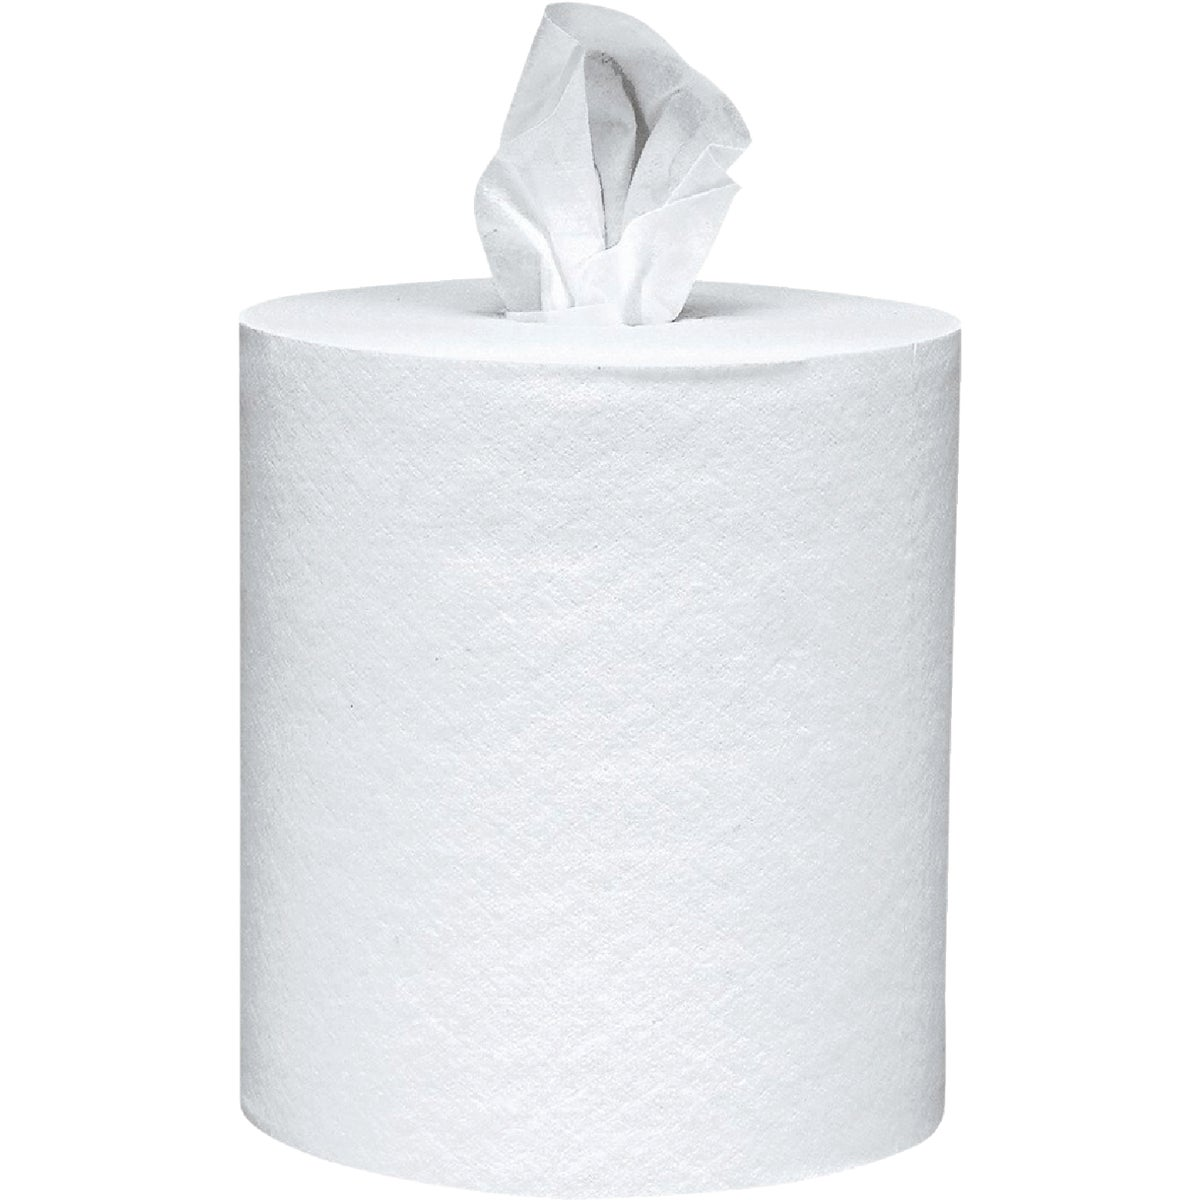 1-PLY ROLL TOWEL - KCC01320 by Lagassesweet  Incom